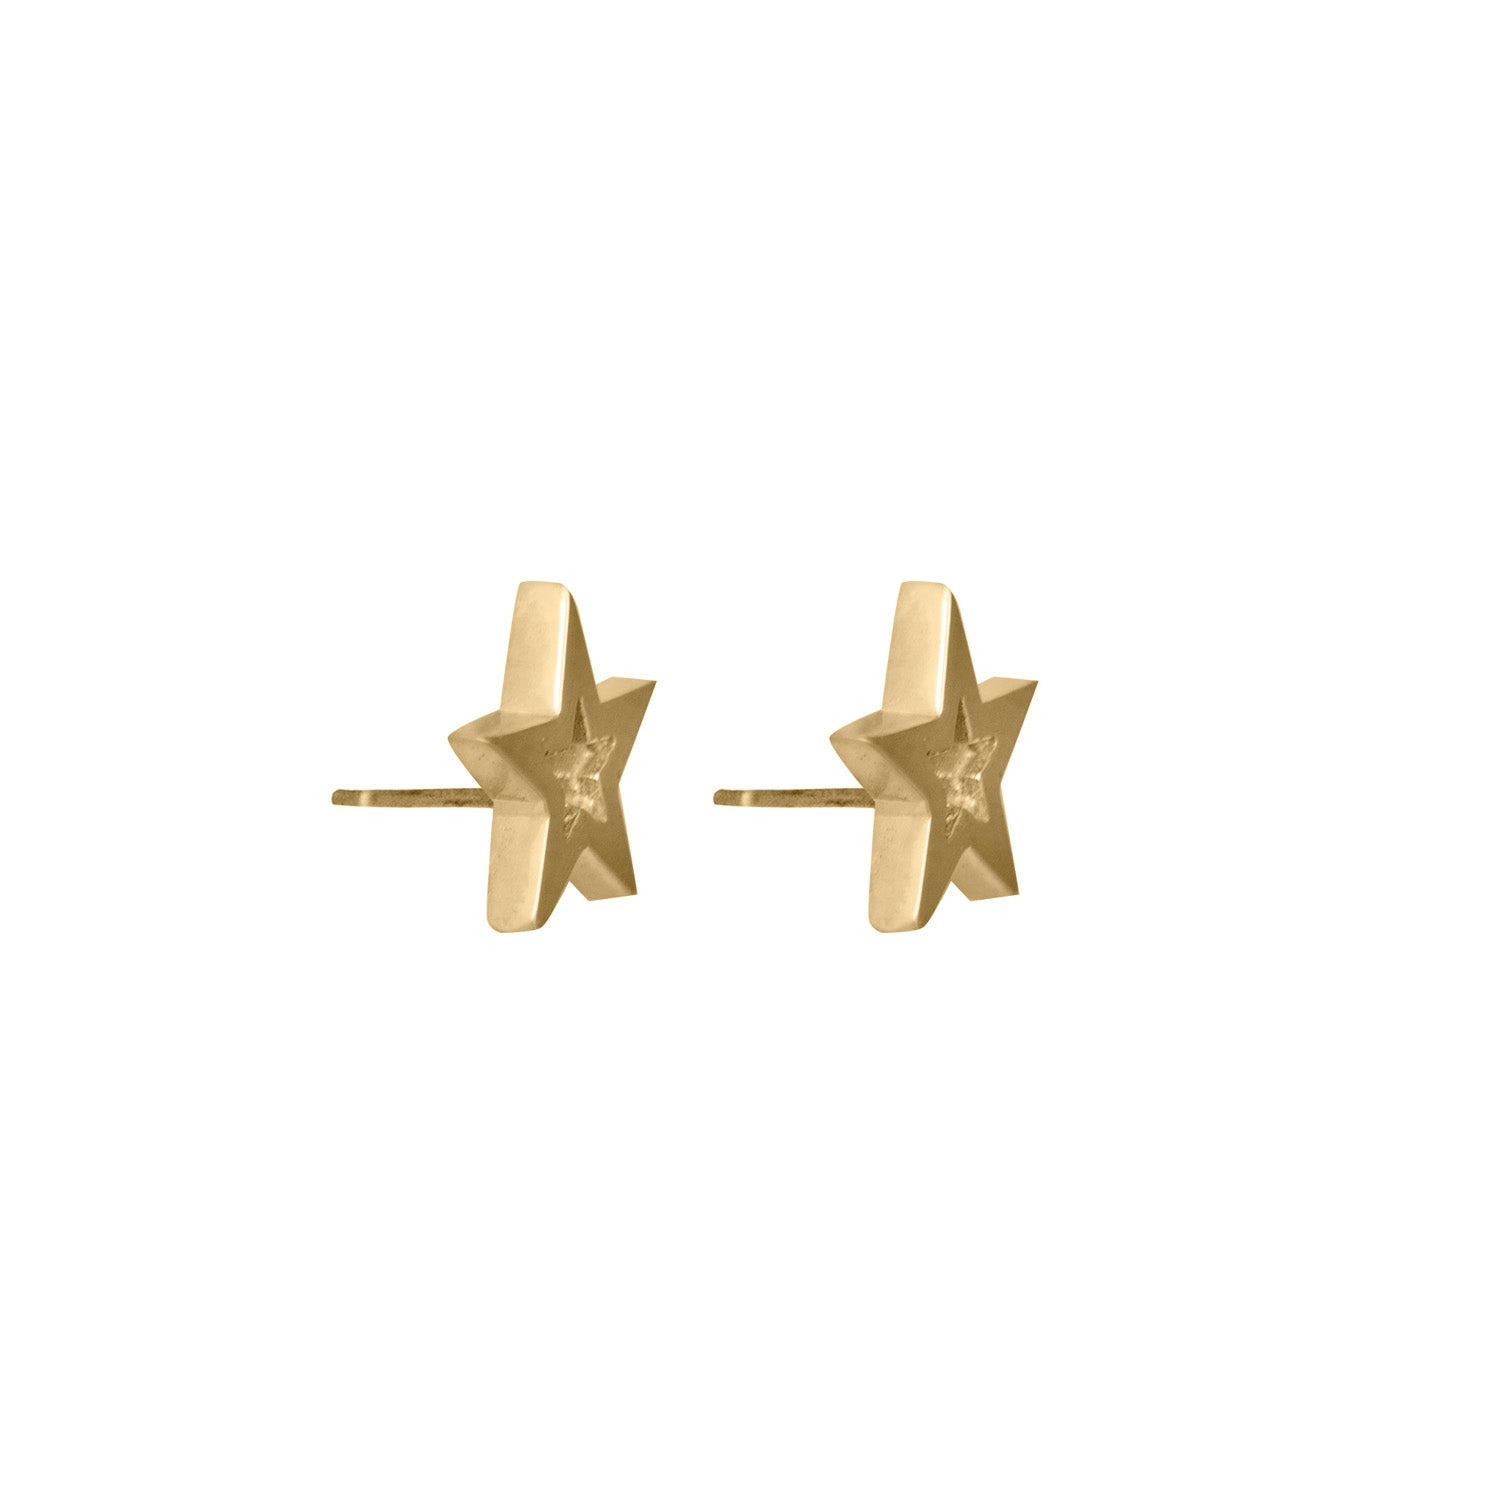 Megastar Earrings - 9ct gold